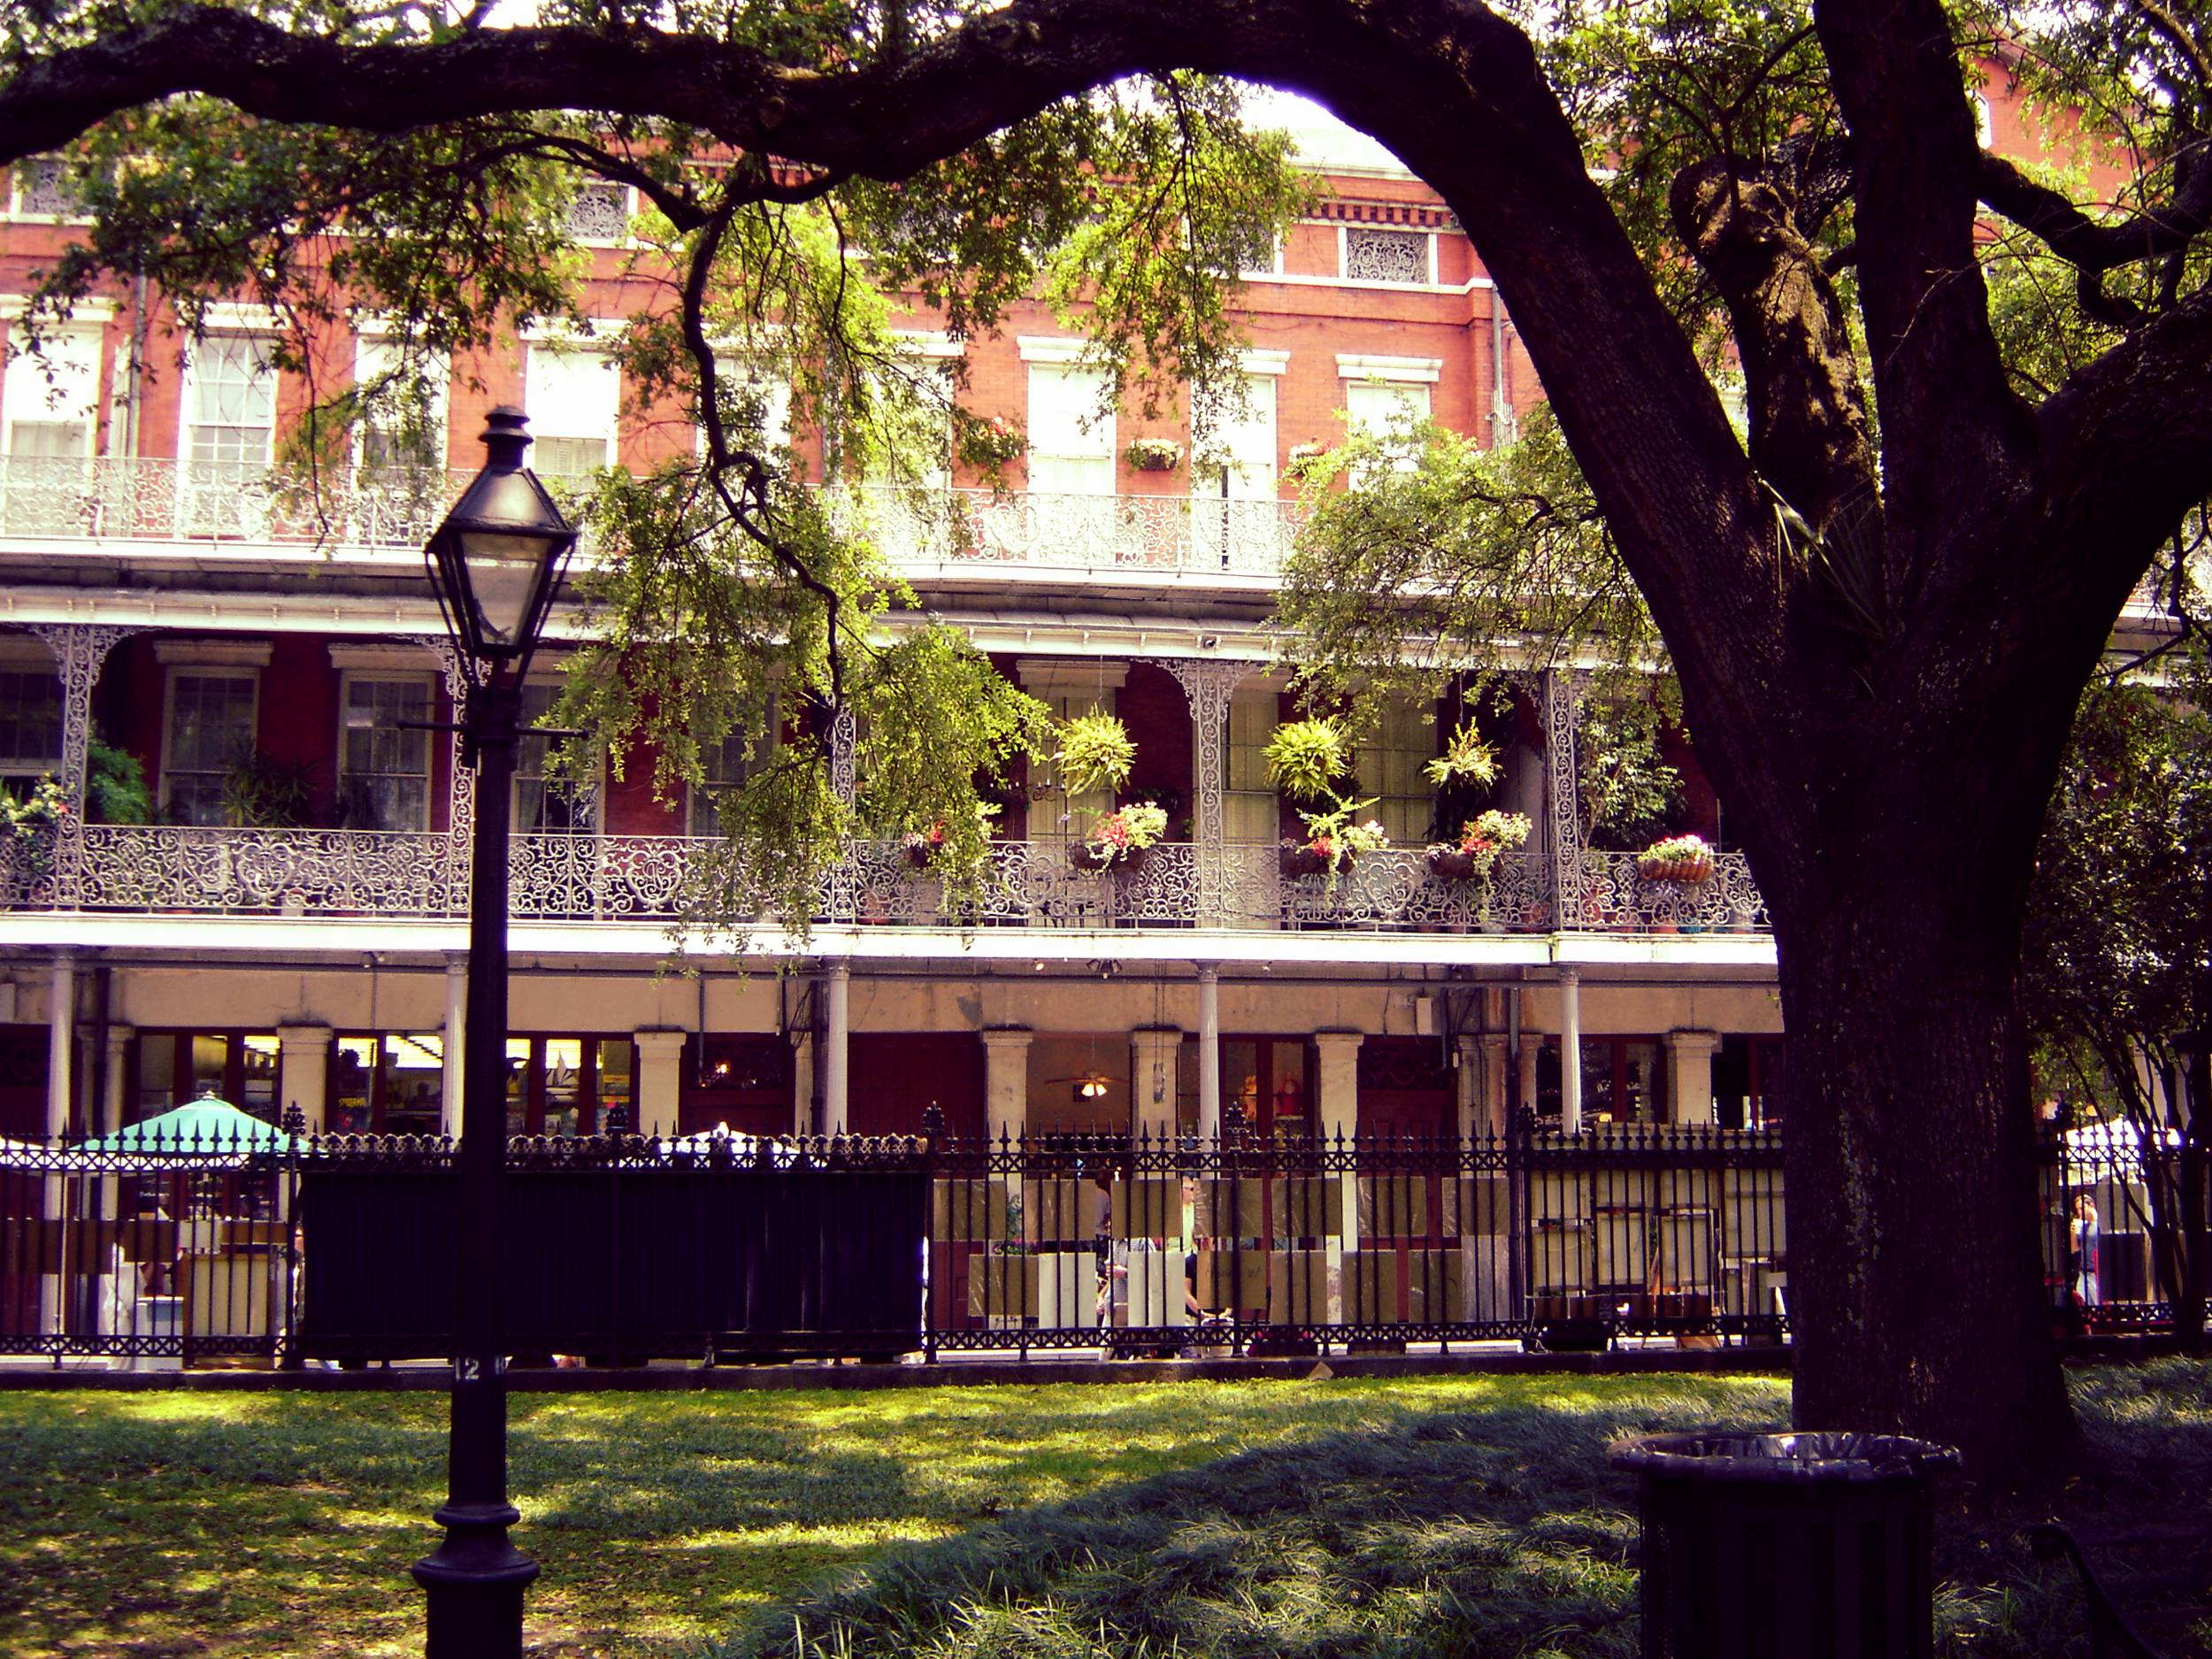 Sweeping trees and wrought iron balconies are the epitome of New Orleans.